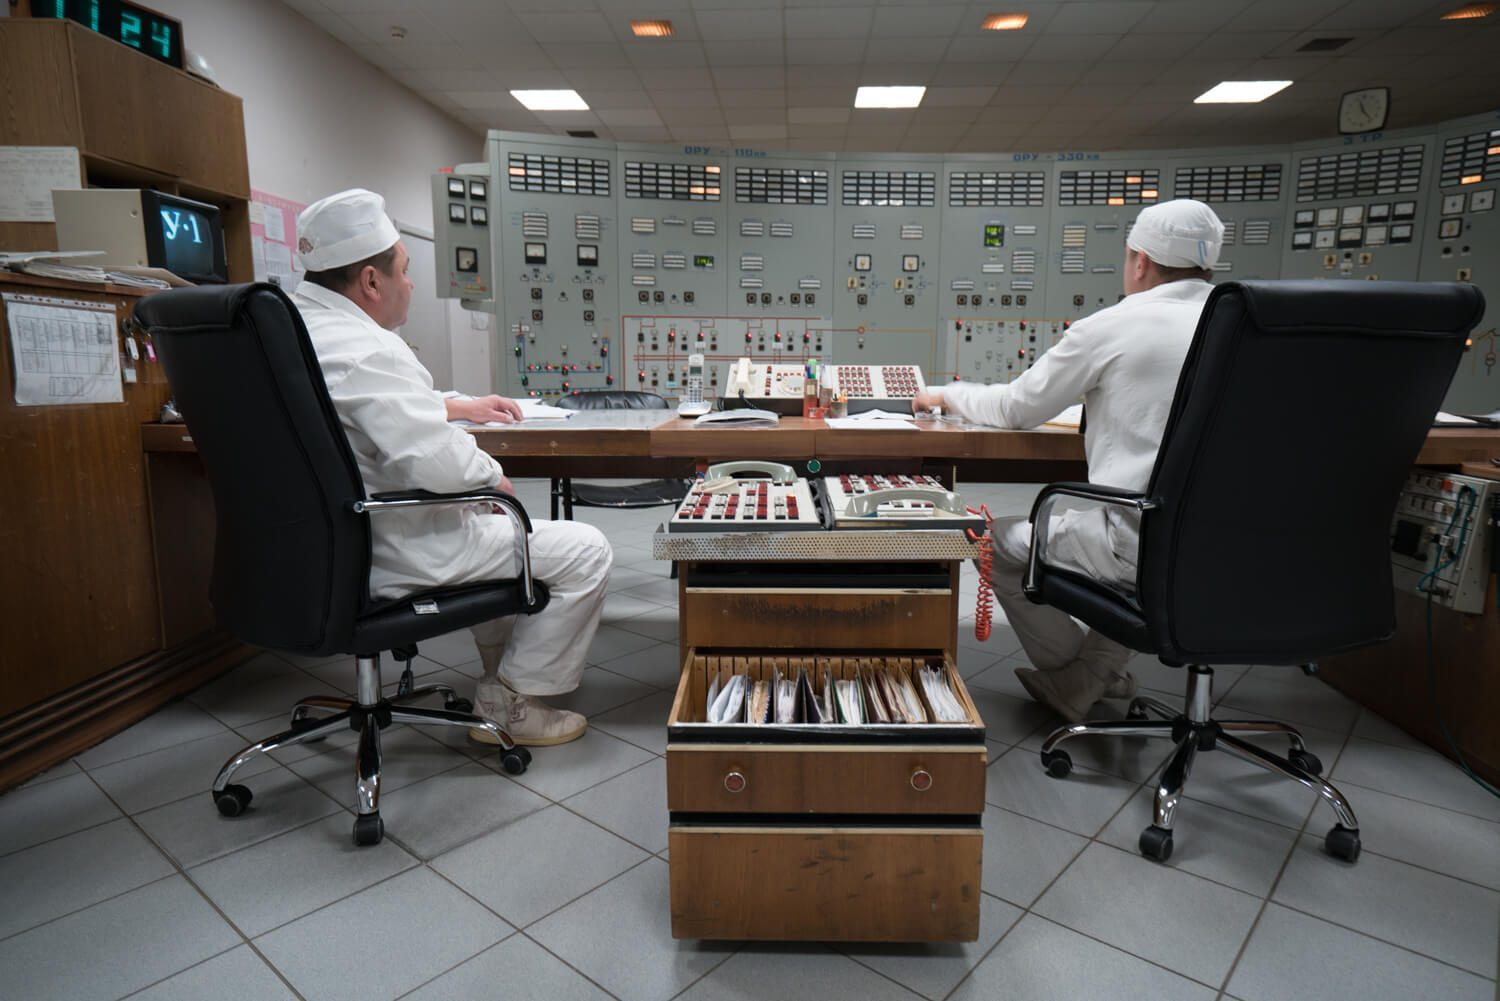 Monitoring the energy in Chernobyl